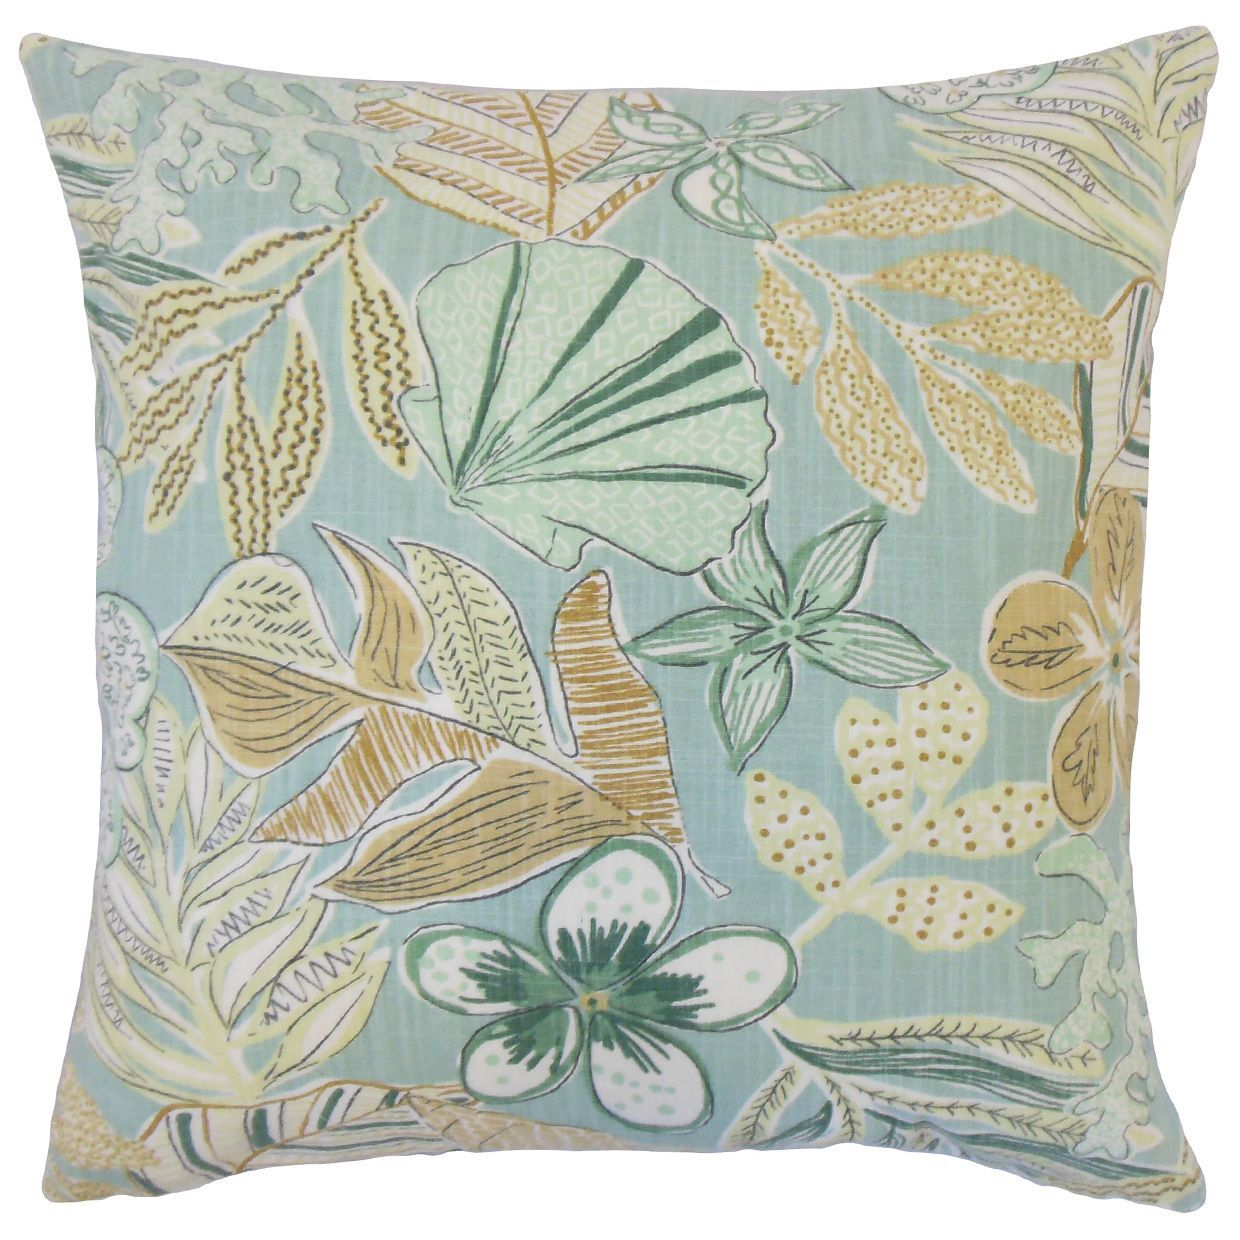 Felice 18-inch Throw Feather and Down Filled Throw Pillow